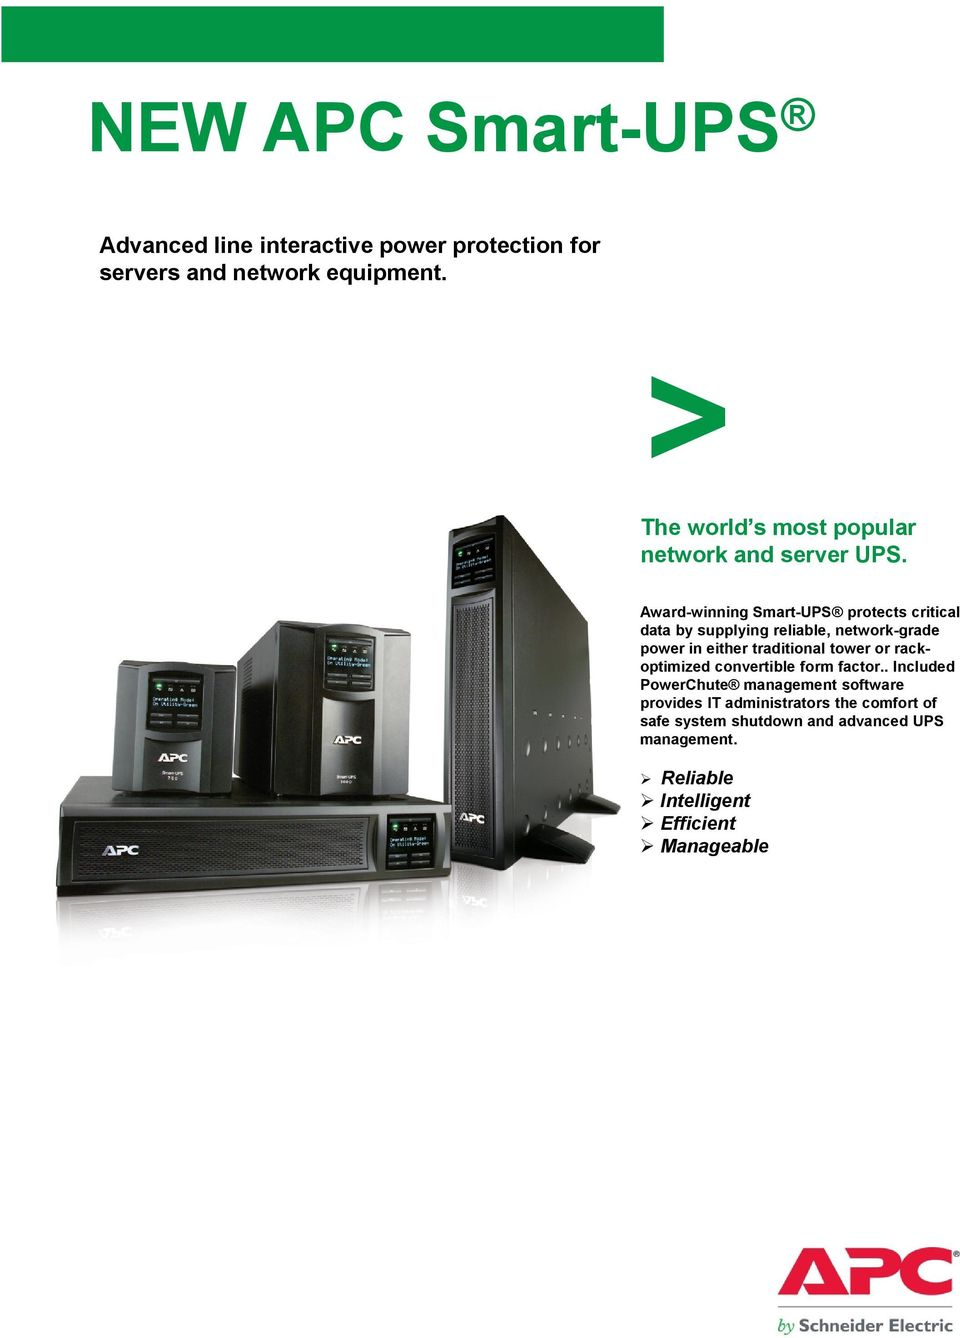 Award-winning Smart-UPS protects critical data by supplying reliable, network-grade power in either traditional tower or